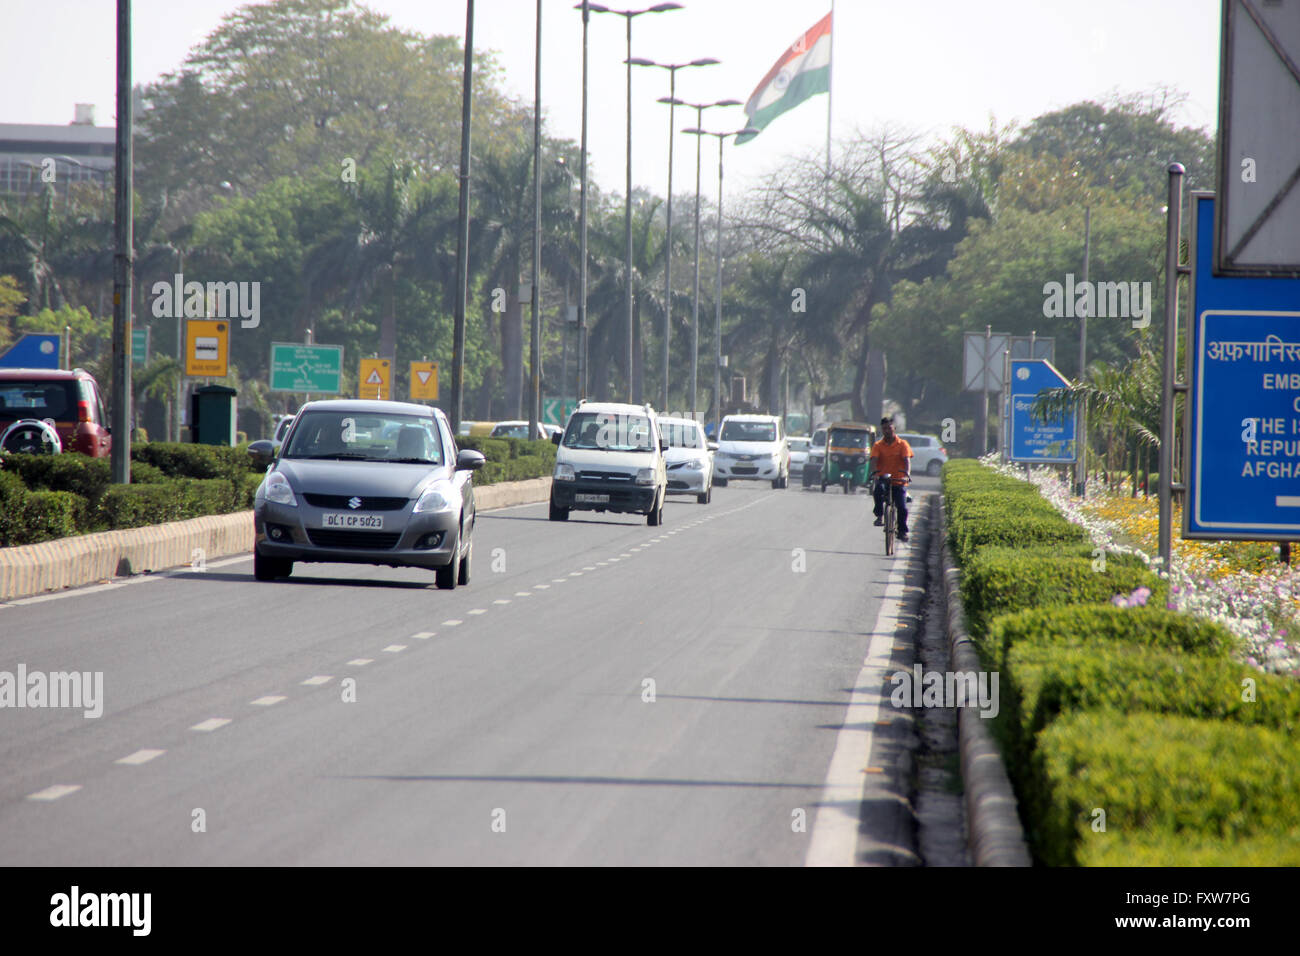 Shanti Path, New Delhi, with beautiful hedges on both sides, well maintained flower beds and lawns, embassies on Stock Photo